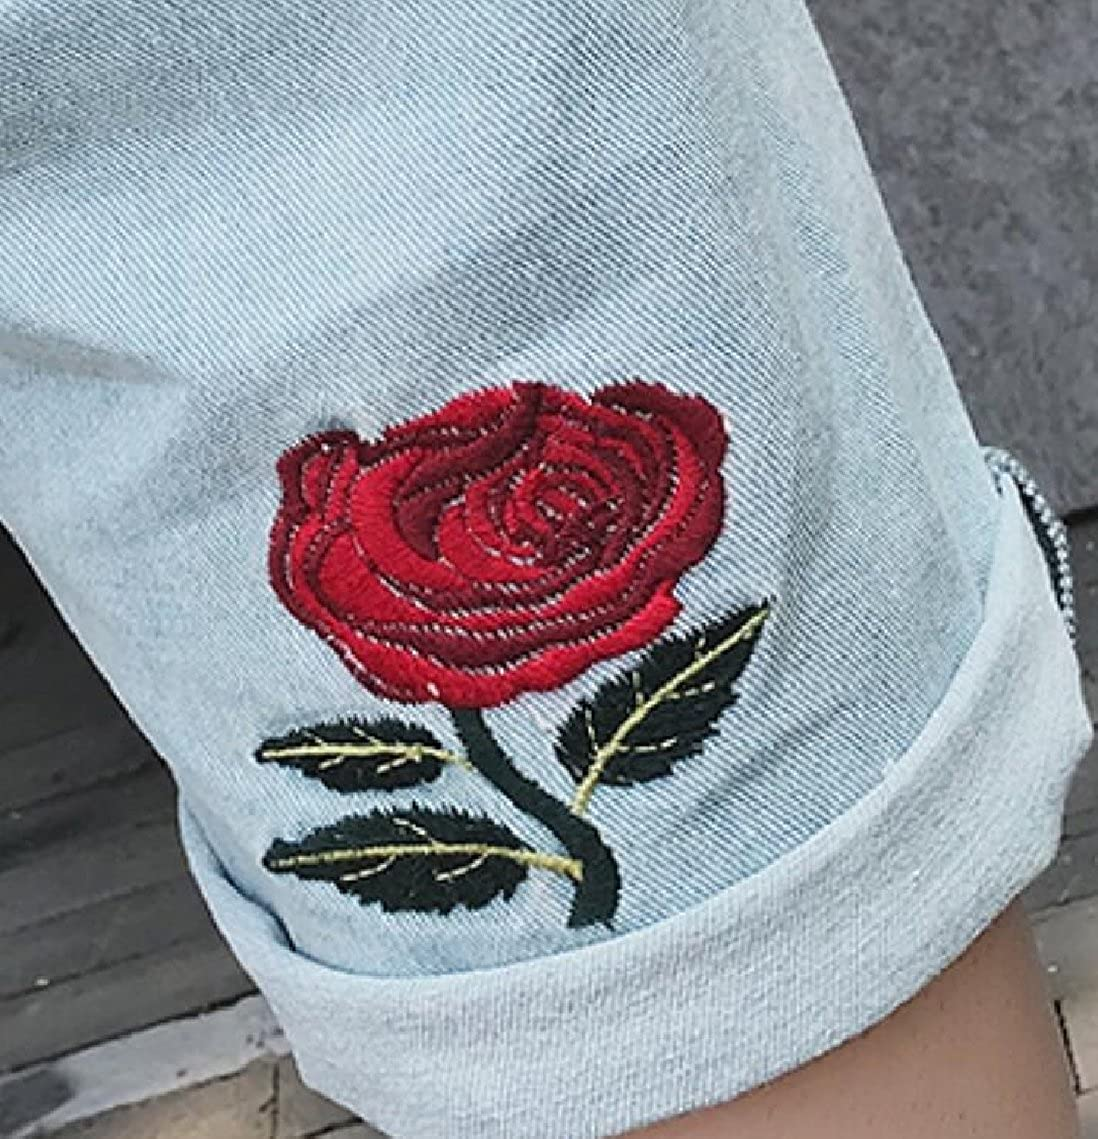 HTOOHTOOH Mens Rose Embroidery Casual Washed Jeans Denim Shorts